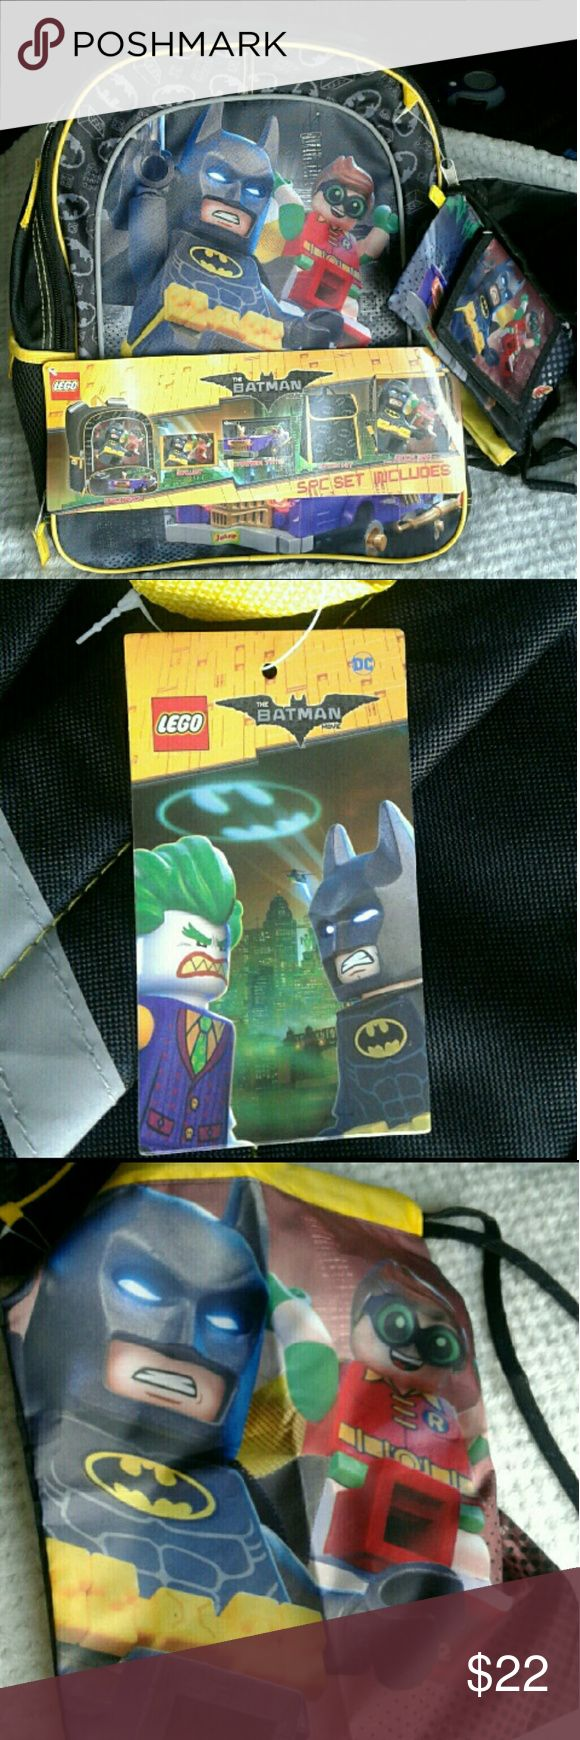 Kids 5-Piece Lego Batman Backpack and Lunchbox Set Kids 5-Piece Lego Batman Backpack and Lunchbox Set  Lego Batman and Robin Graphic, also features the Joker   What's Included in the Set:  - Backpack  - Lunch tote  - Wallet  - Carrier Tote  - Cinch Sack   This is from the Lego Batman Movie Set   Brand New With Tags, Never Used and No Flaws  Excellent Condition   Great Gift Idea for Children!  Offers Welcome :) Lego Batman Other